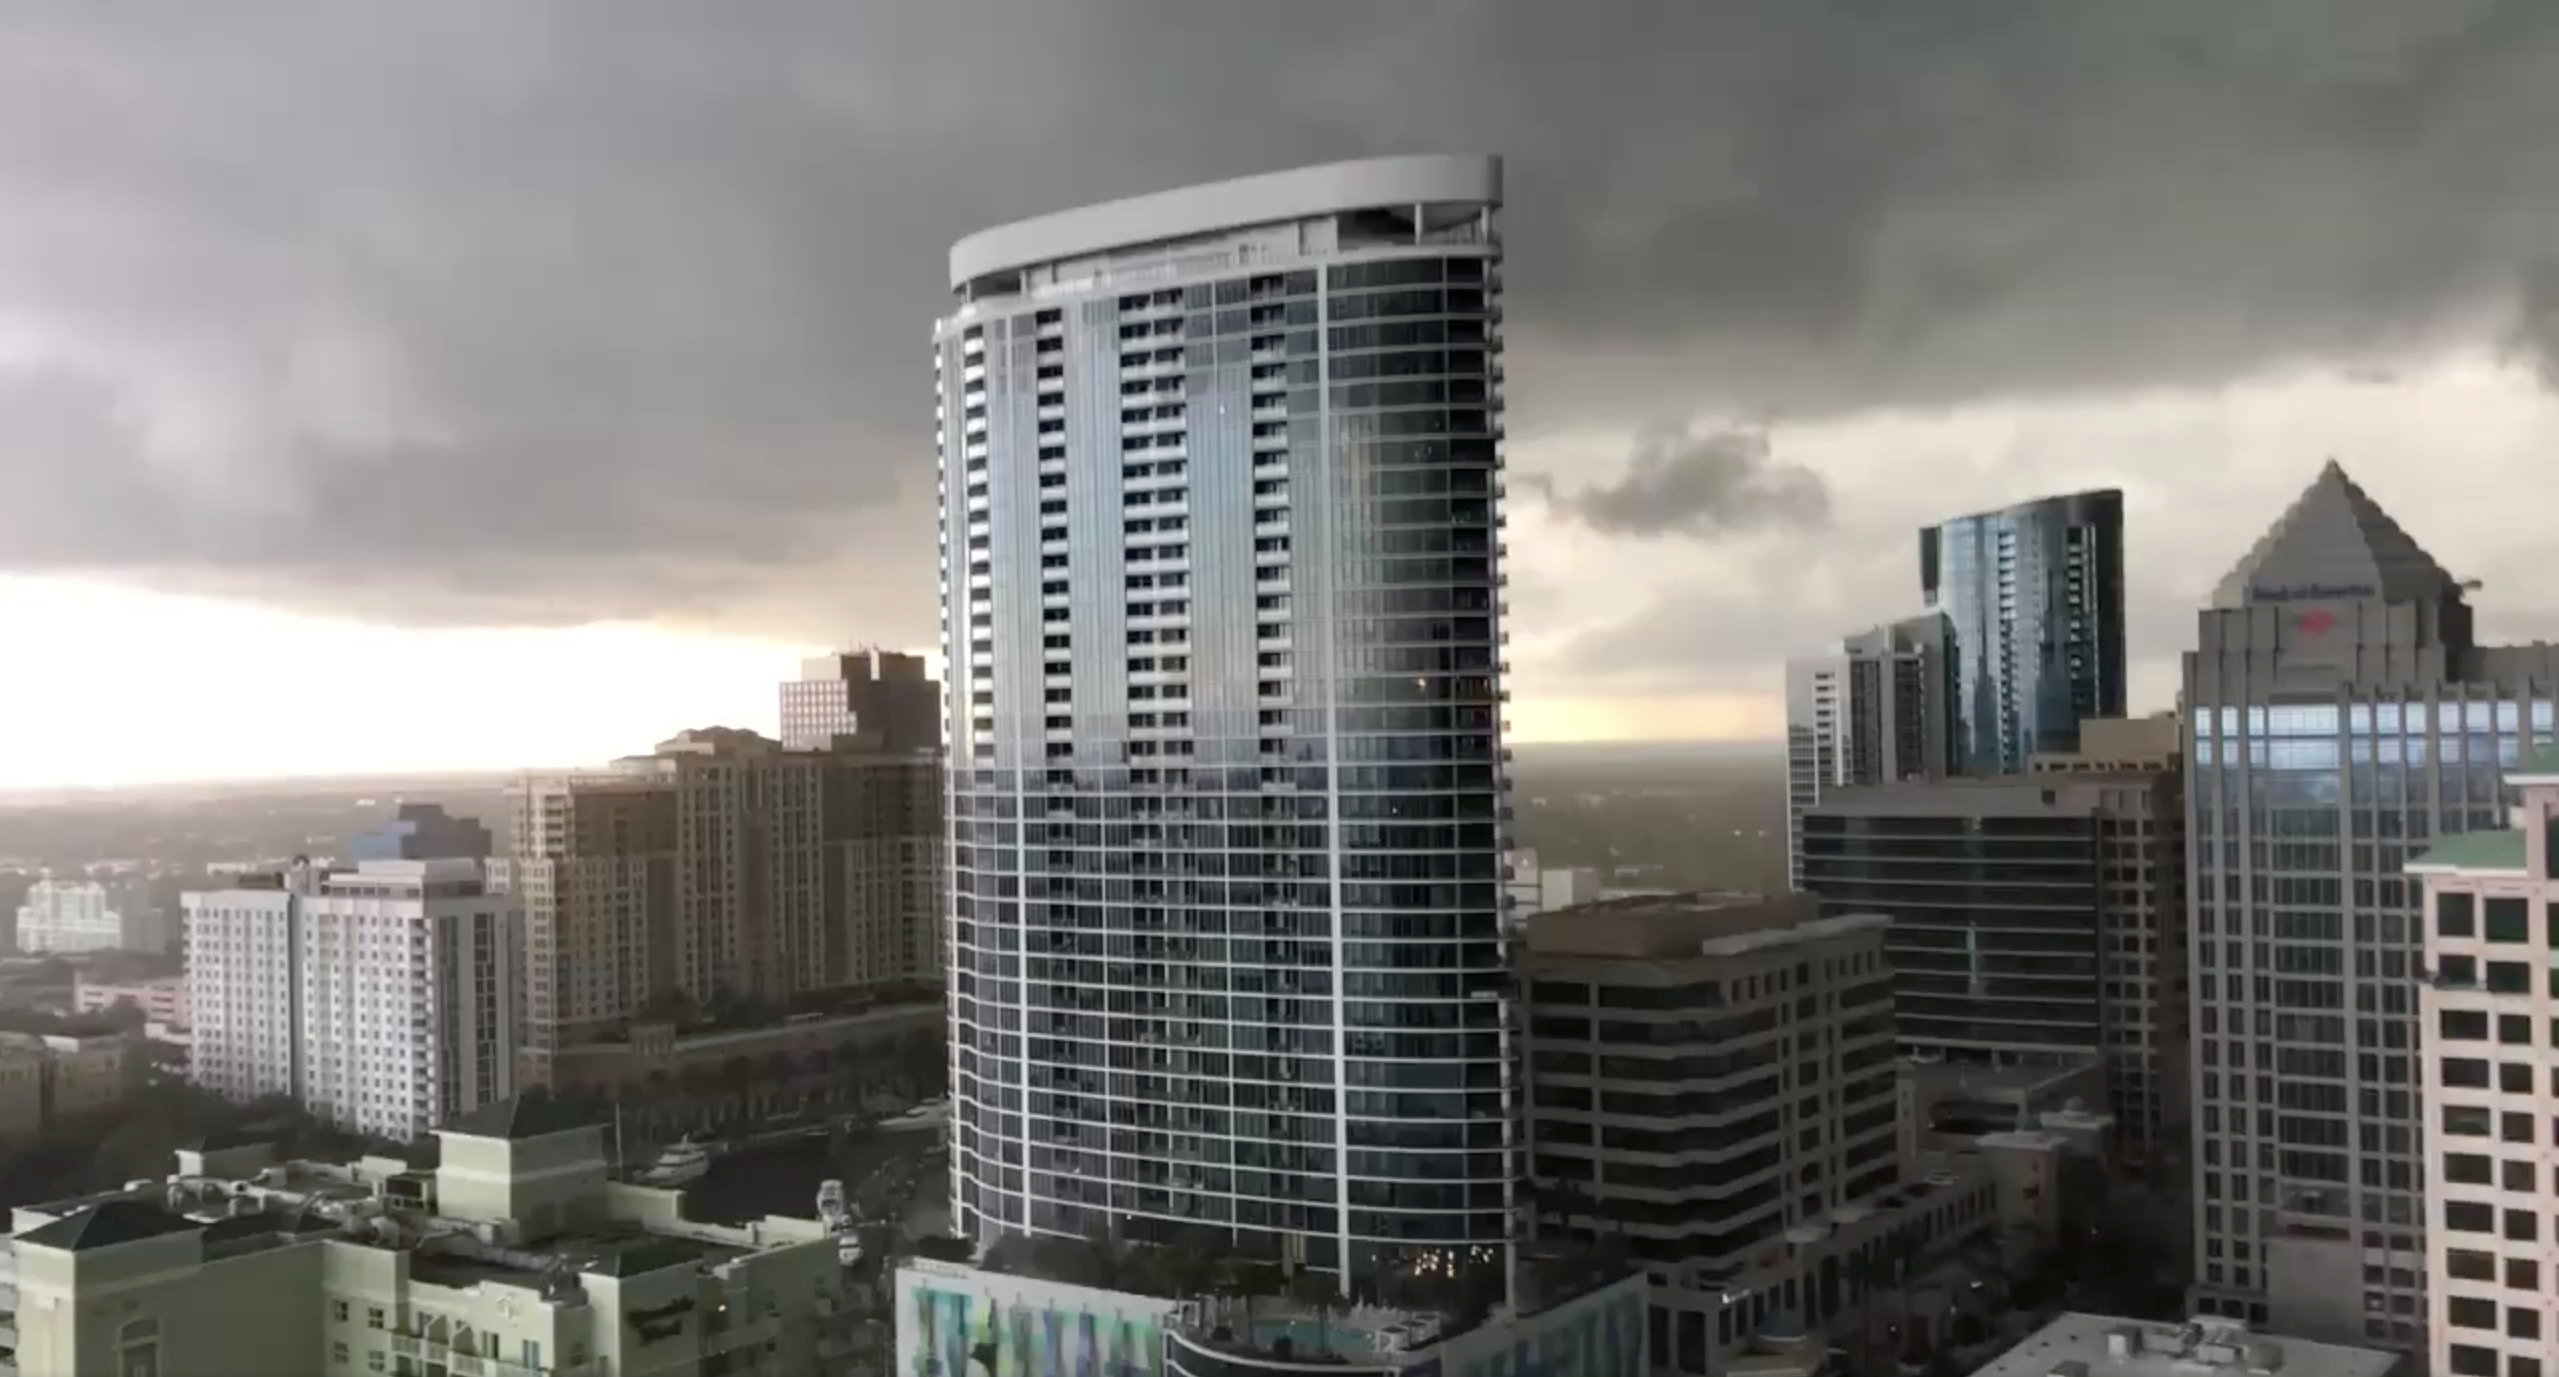 Dark clouds hover above buildings amidst tornadoes in Fort Lauderdale, Florida, the U.S., April 10, 2018 in this still image obtained from a social media video. Emmet Finneran/via REUTERS